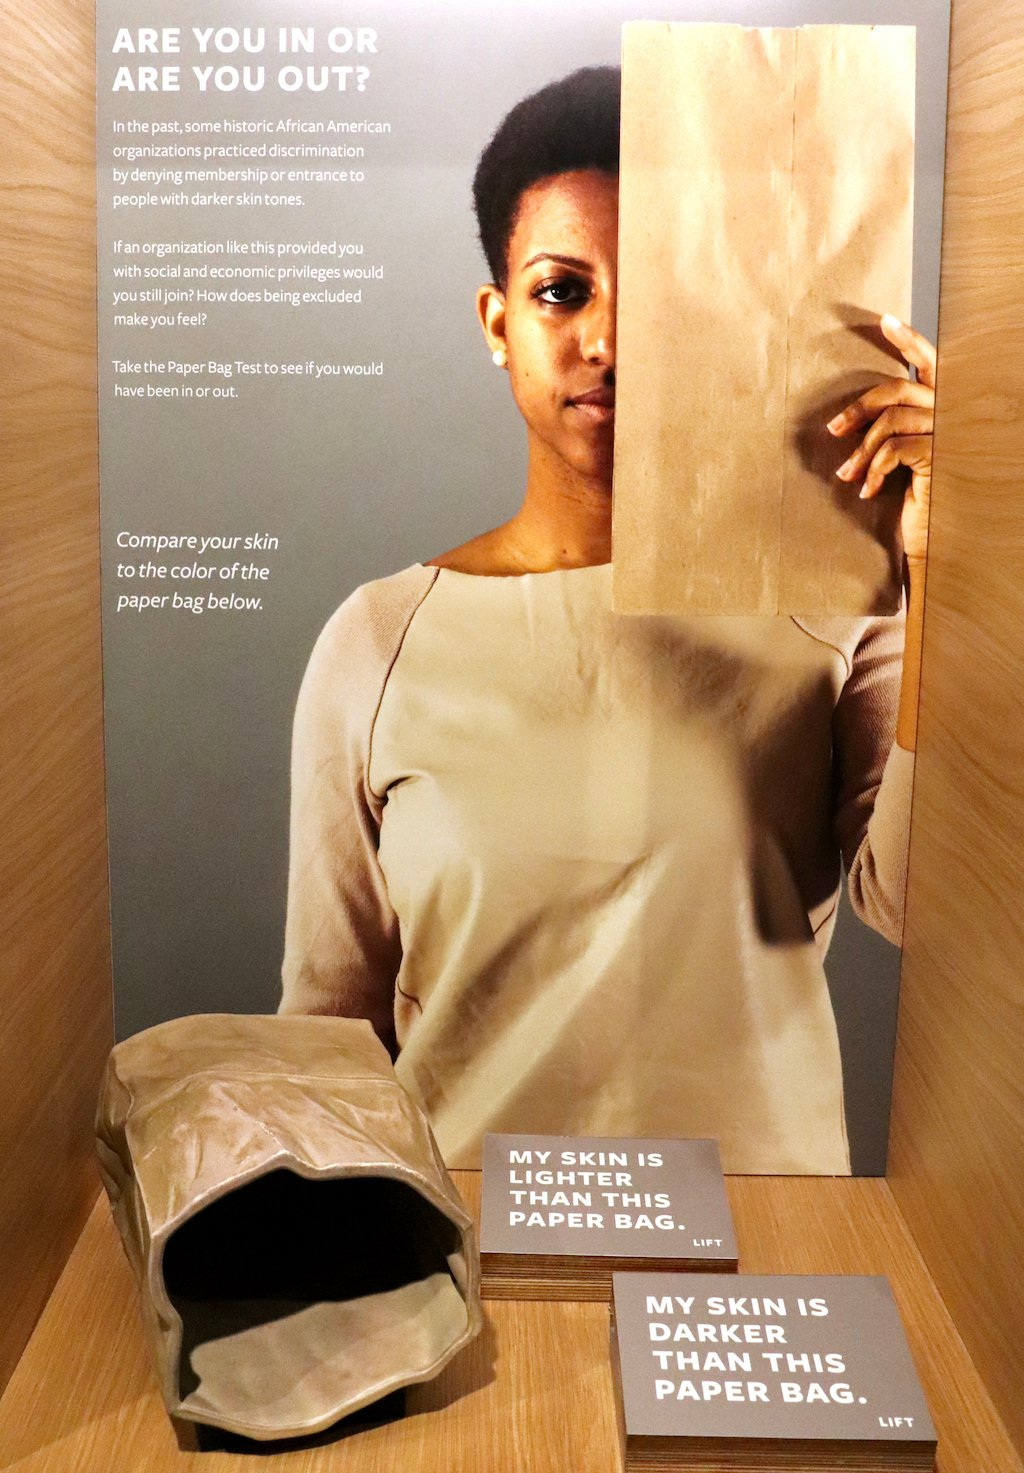 National Museum of African American History and Culture Paper Bag Test